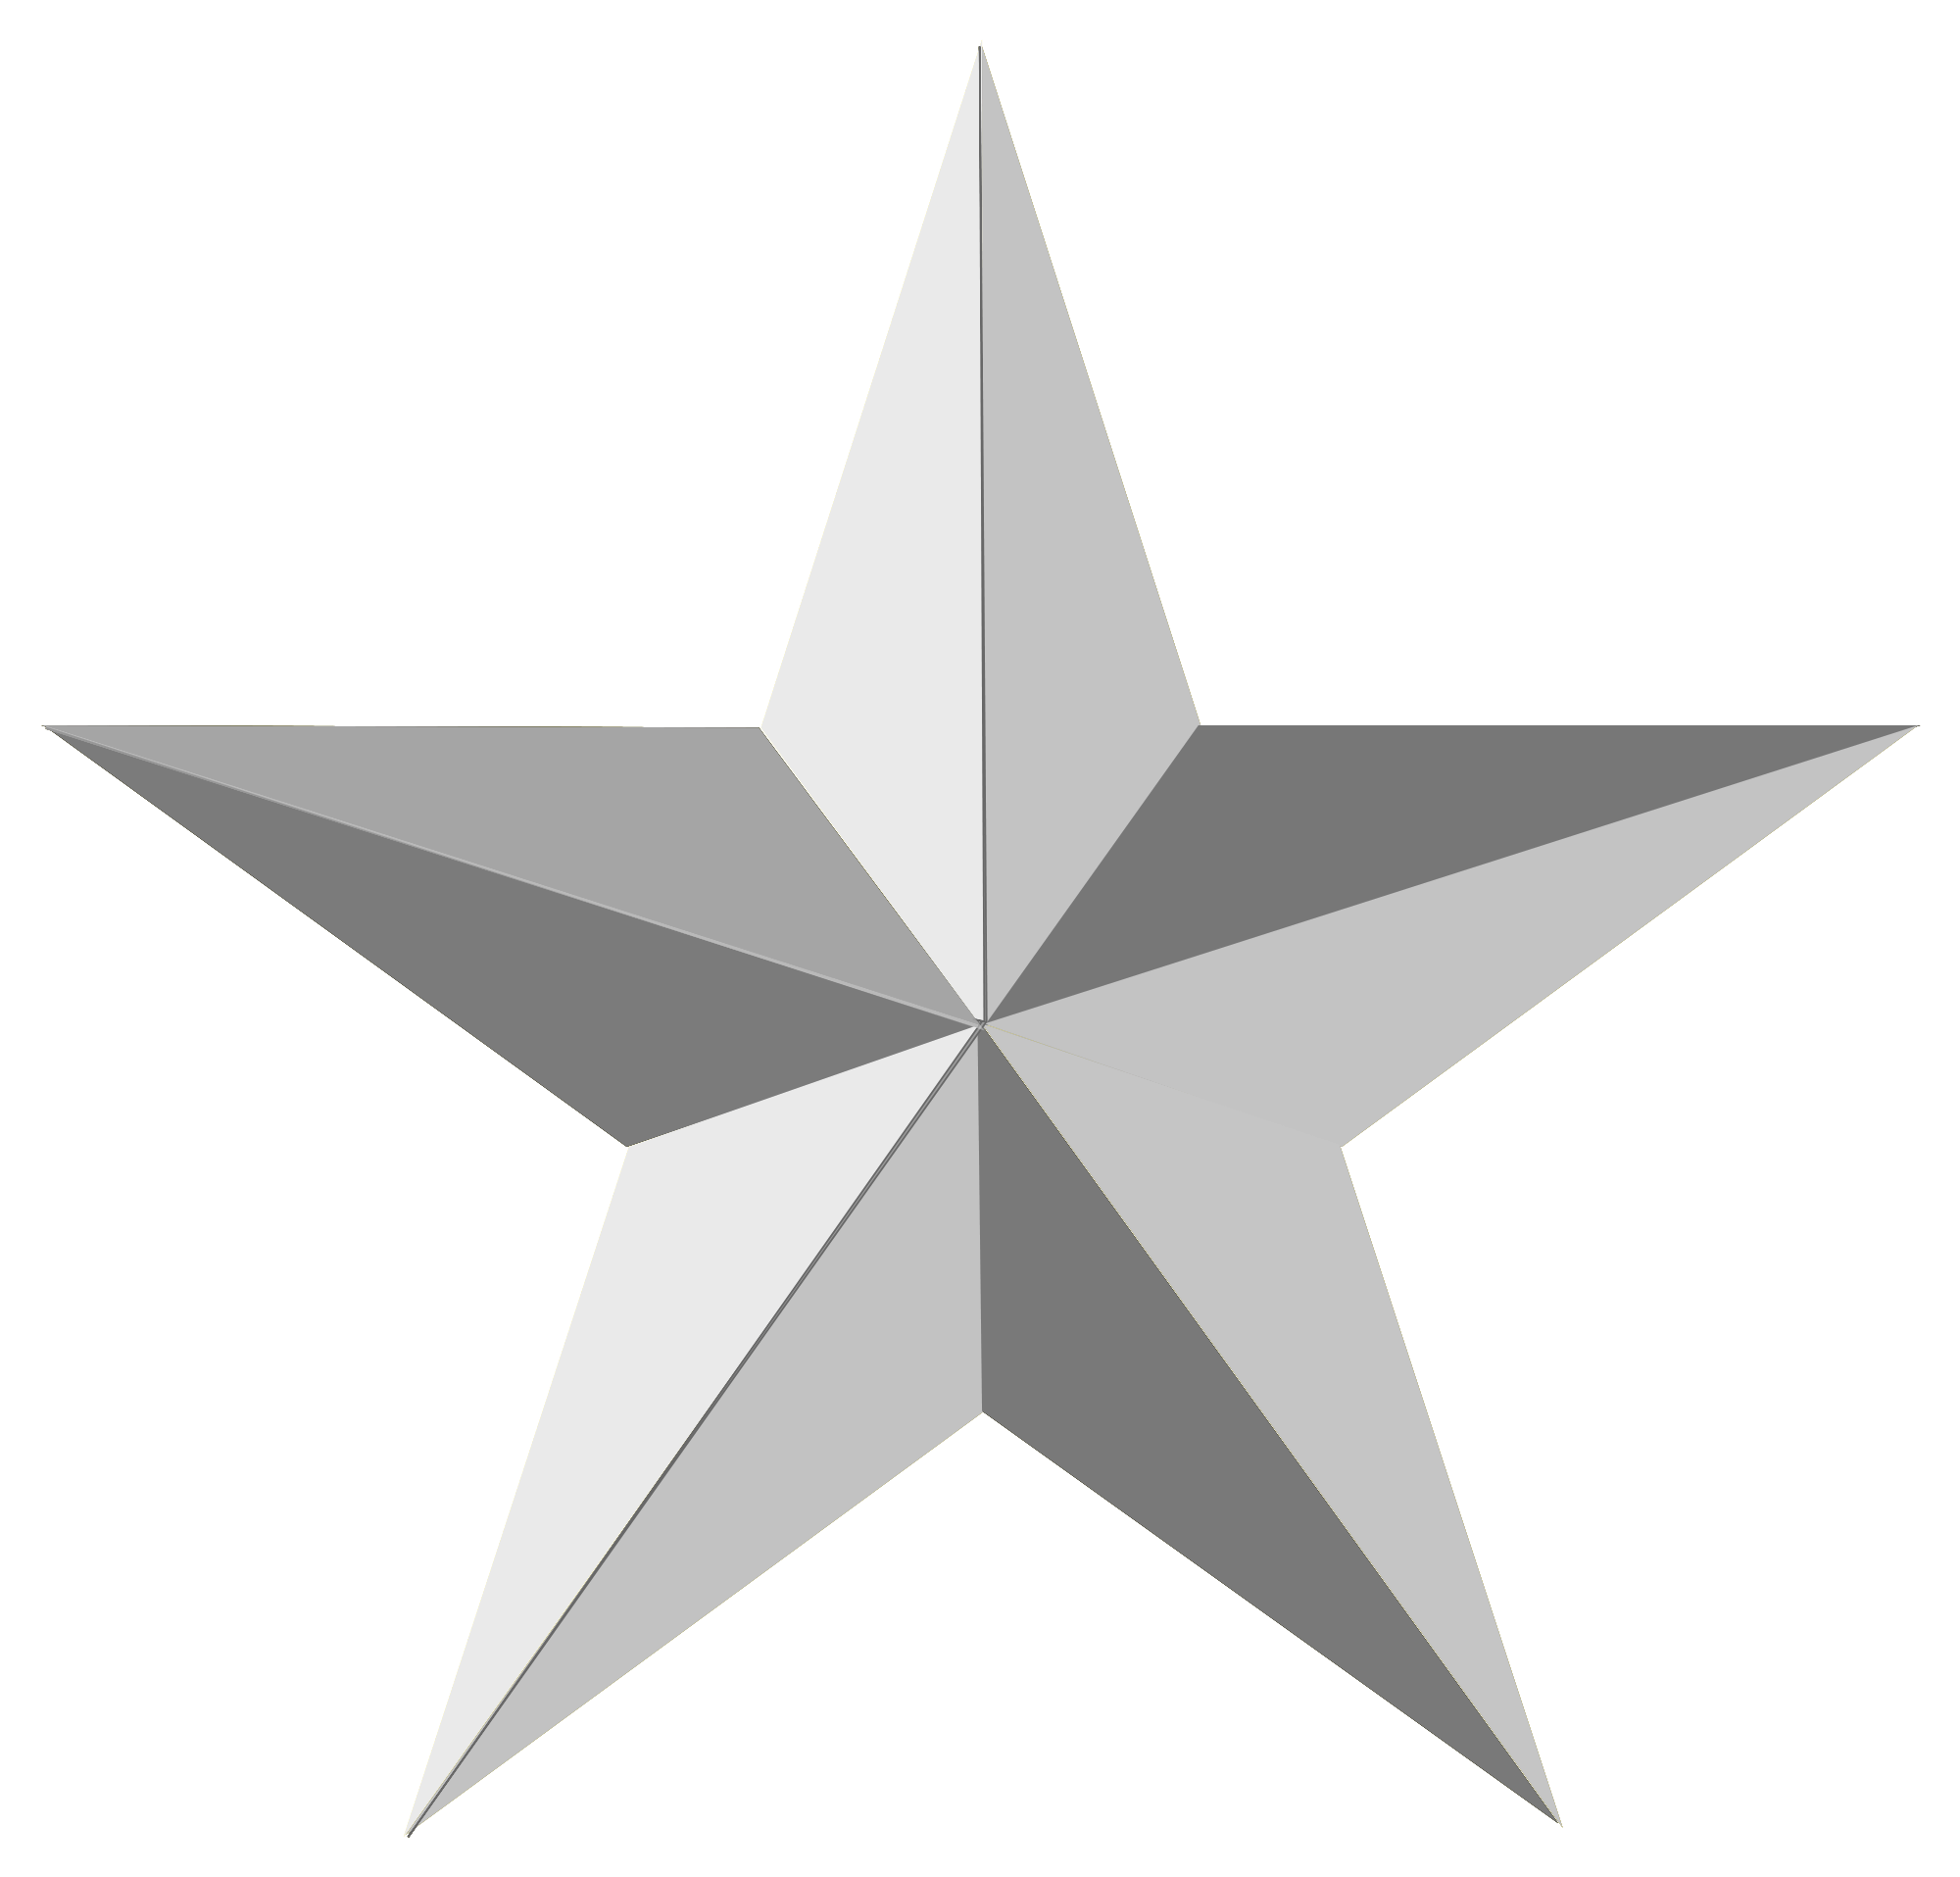 Clipart stars transparent background. Silver star isolated stock